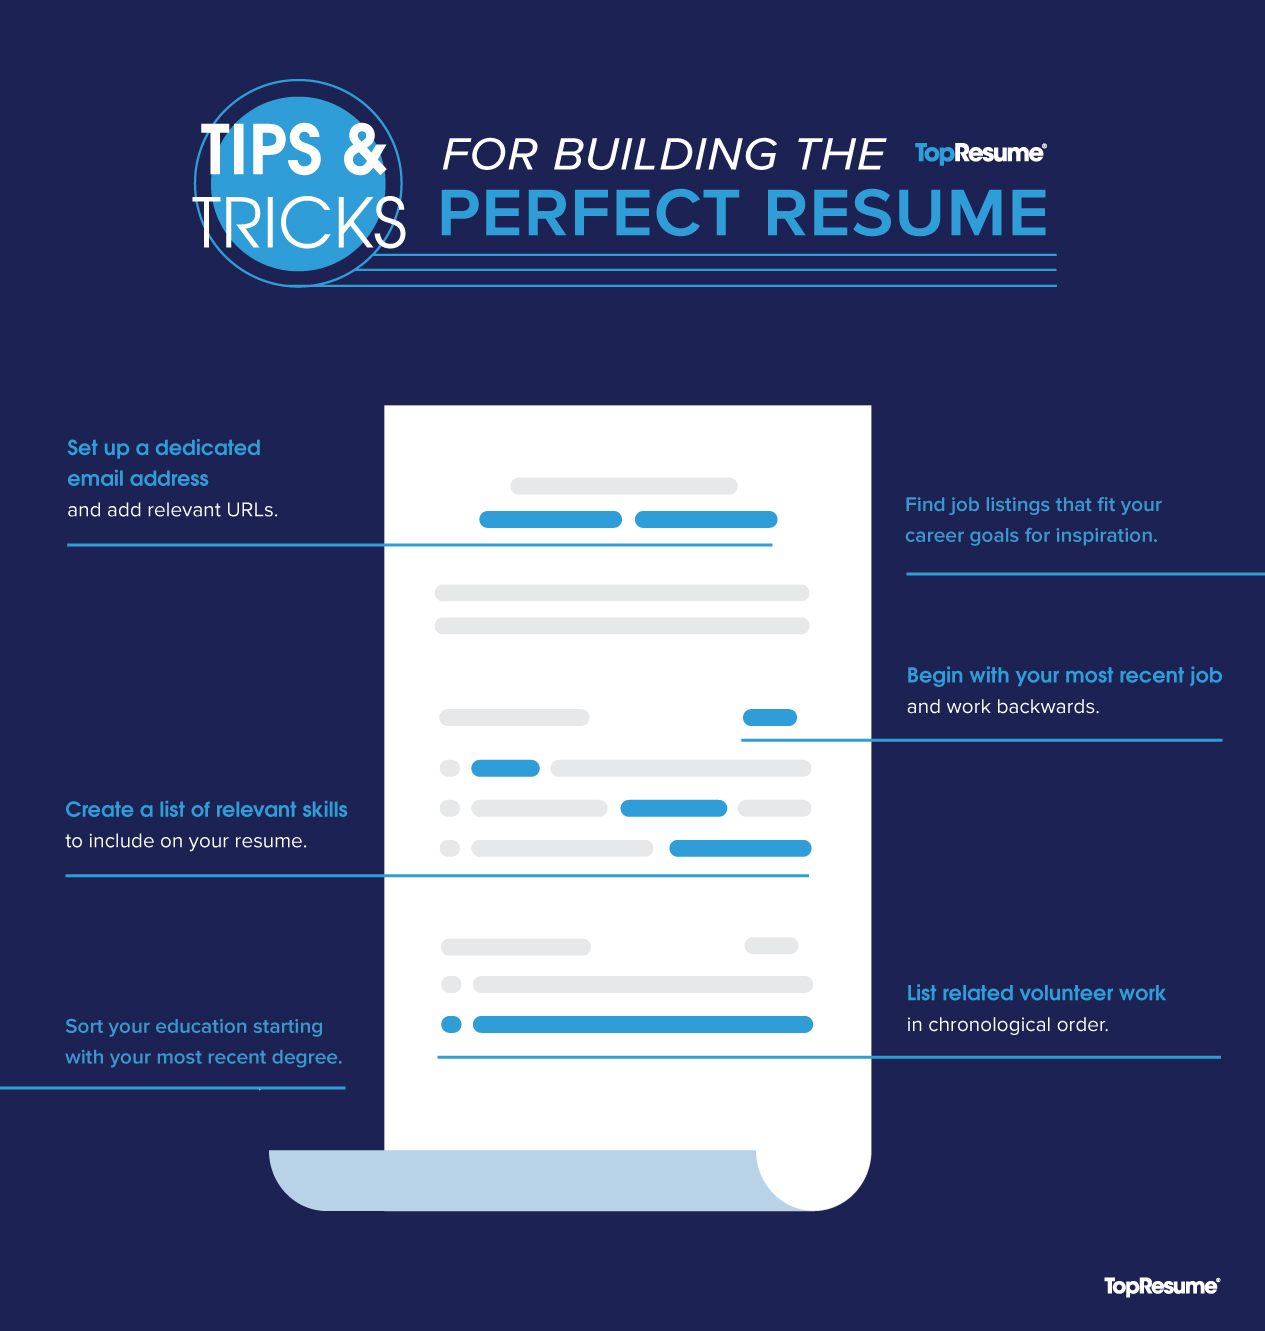 steps to writing the perfect resume topresume tips for great 11stepsinfographic template Resume Tips For Writing A Great Resume